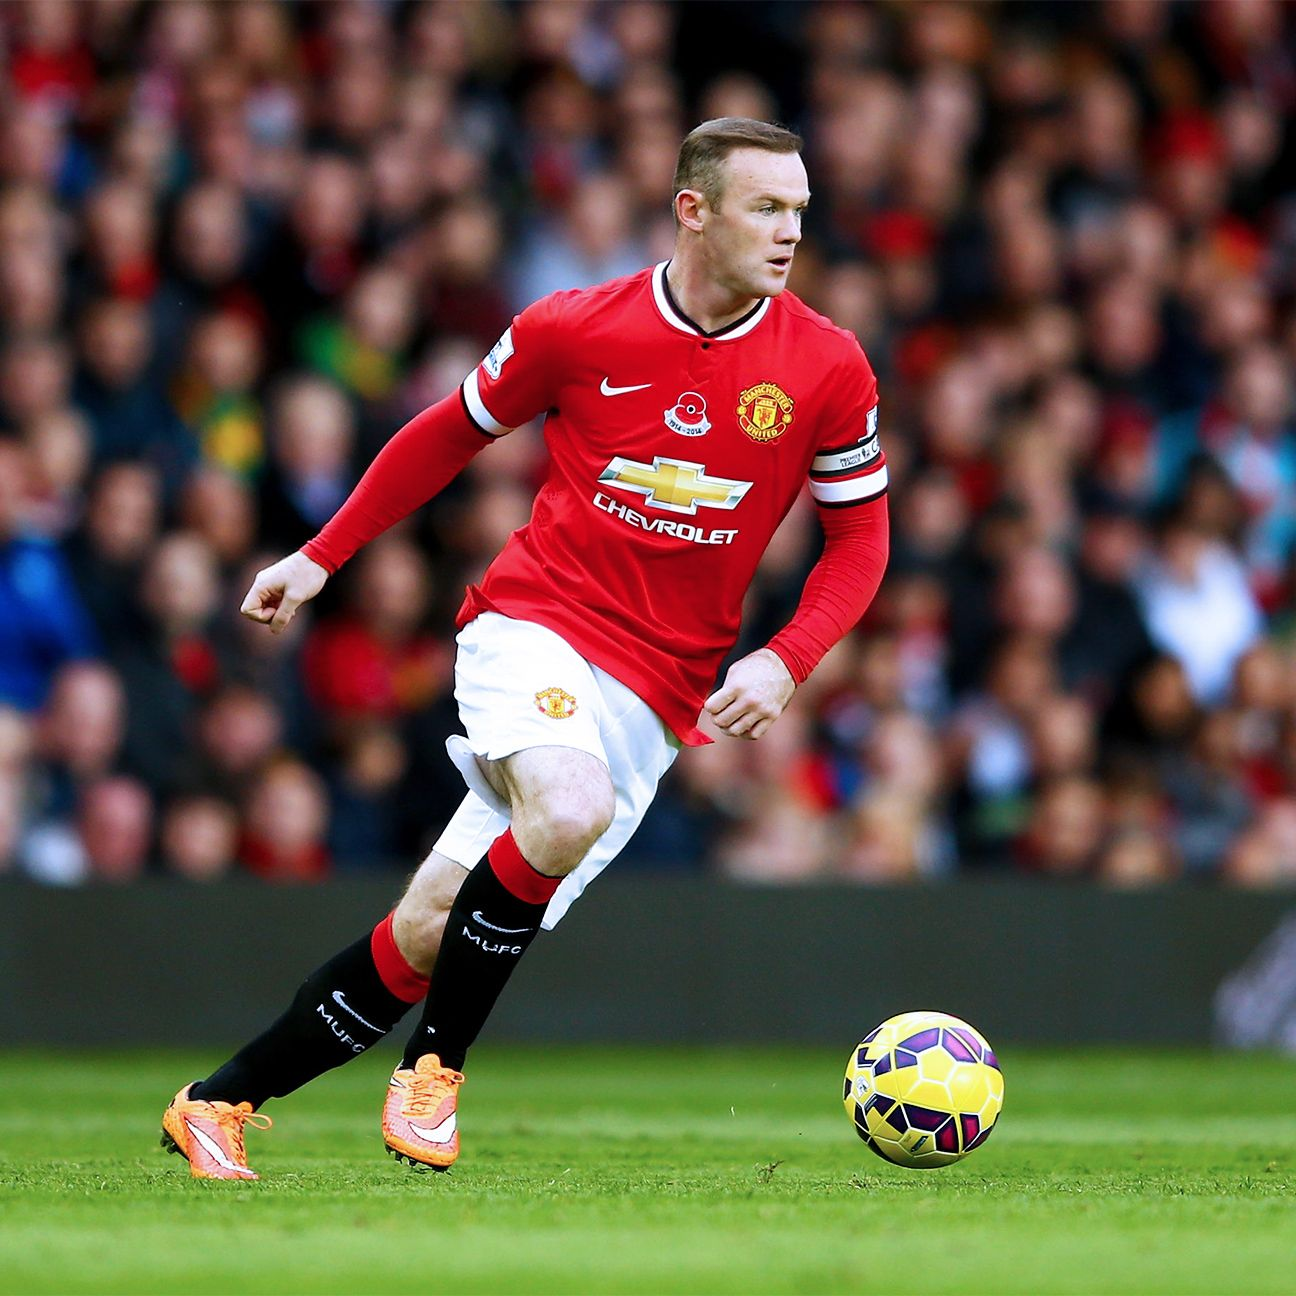 The red-hot Wayne Rooney would be a sound choice for fantasy captain.